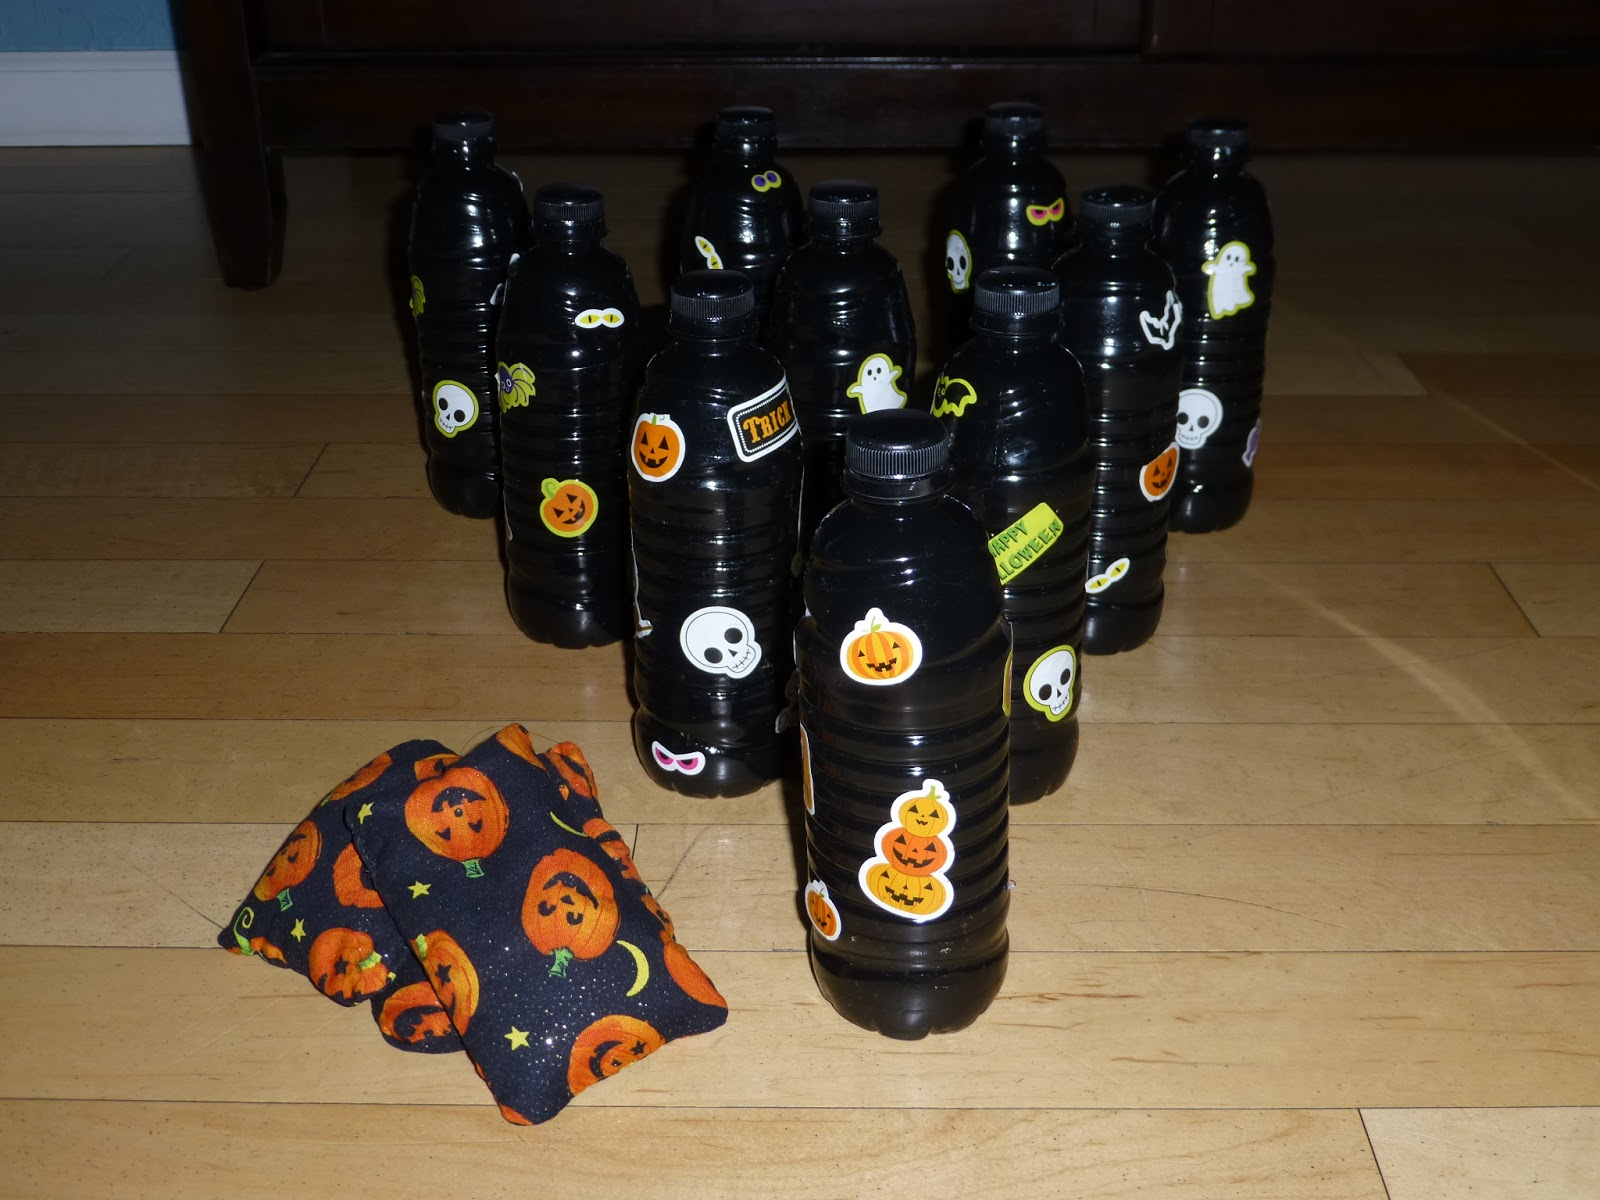 Theresa S Mixed Nuts Halloween Party Games Part 2